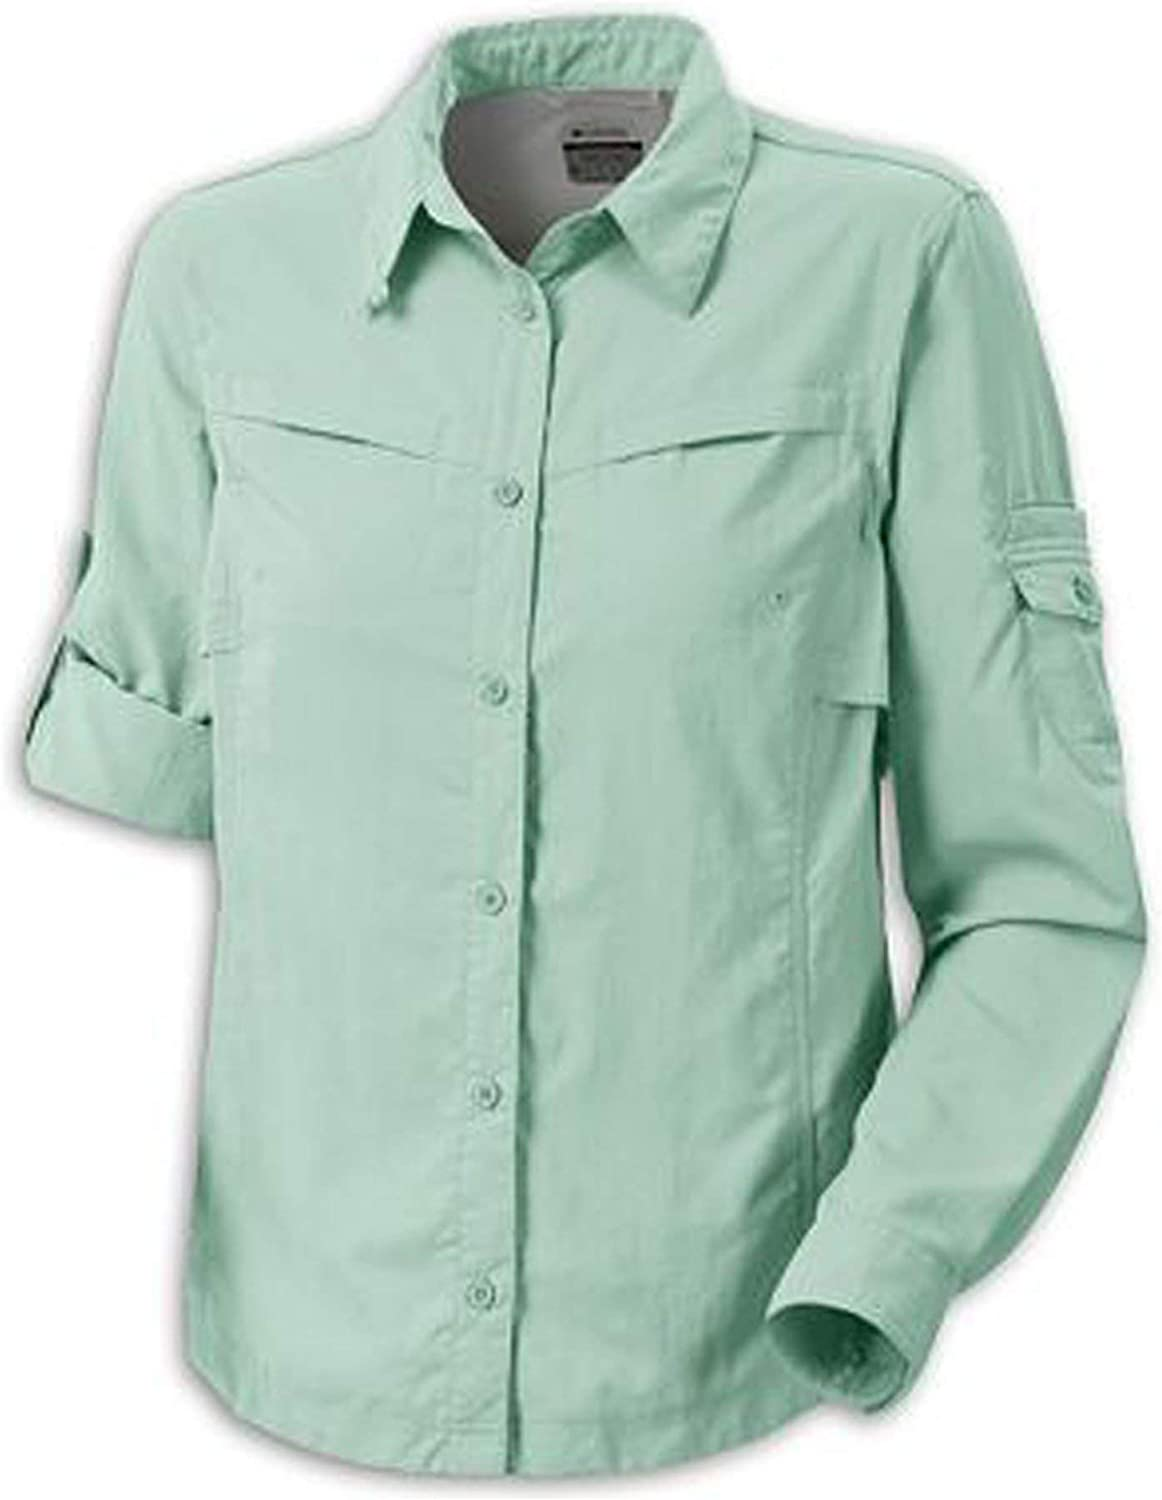 Columbia Womens Omni-Dry Silver Ridge III Long Sleeve Button Down Shirt UPF 30, Medium, Green: Amazon.es: Ropa y accesorios